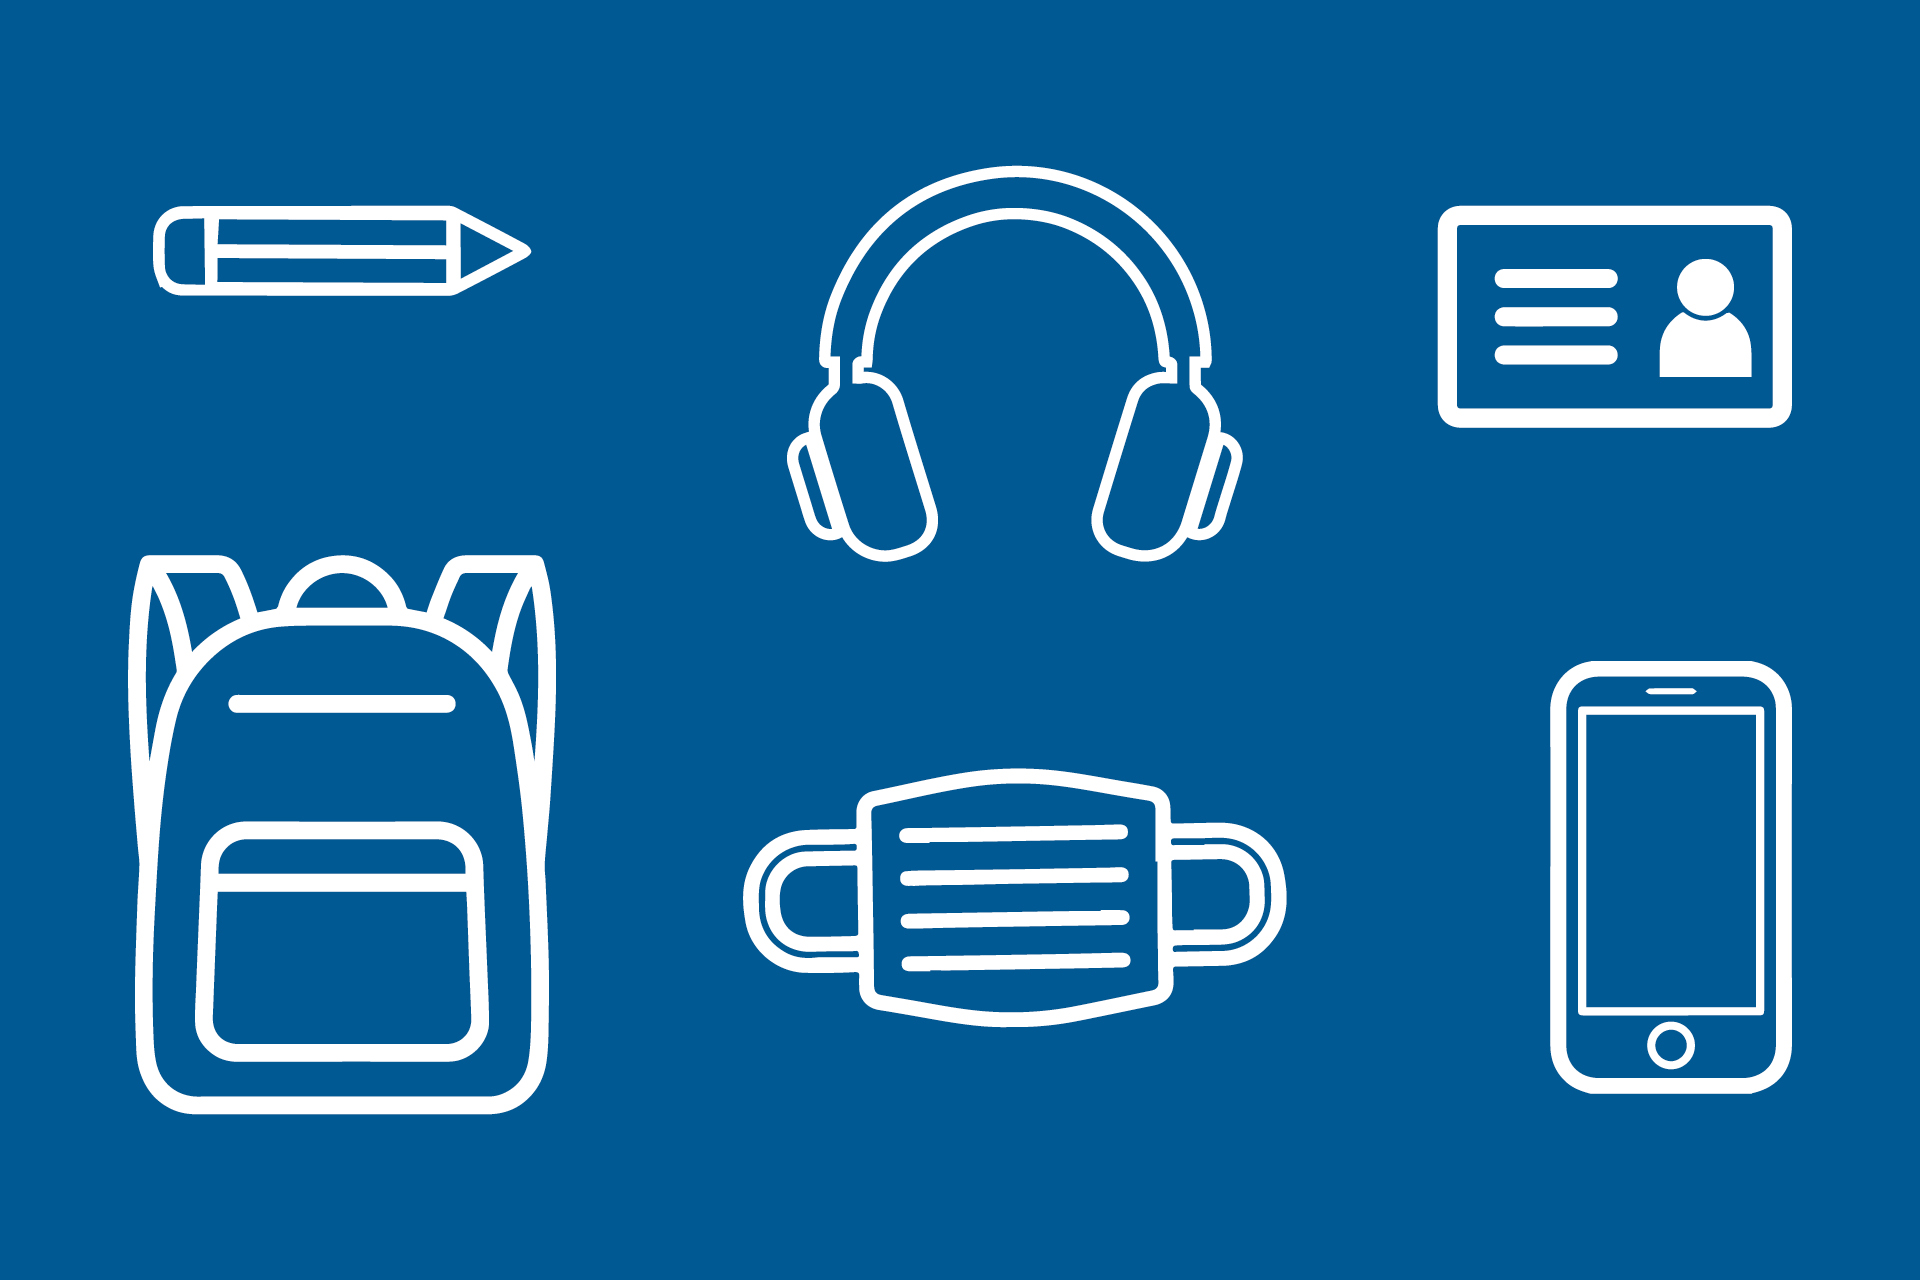 Student graphic with bag contents icons